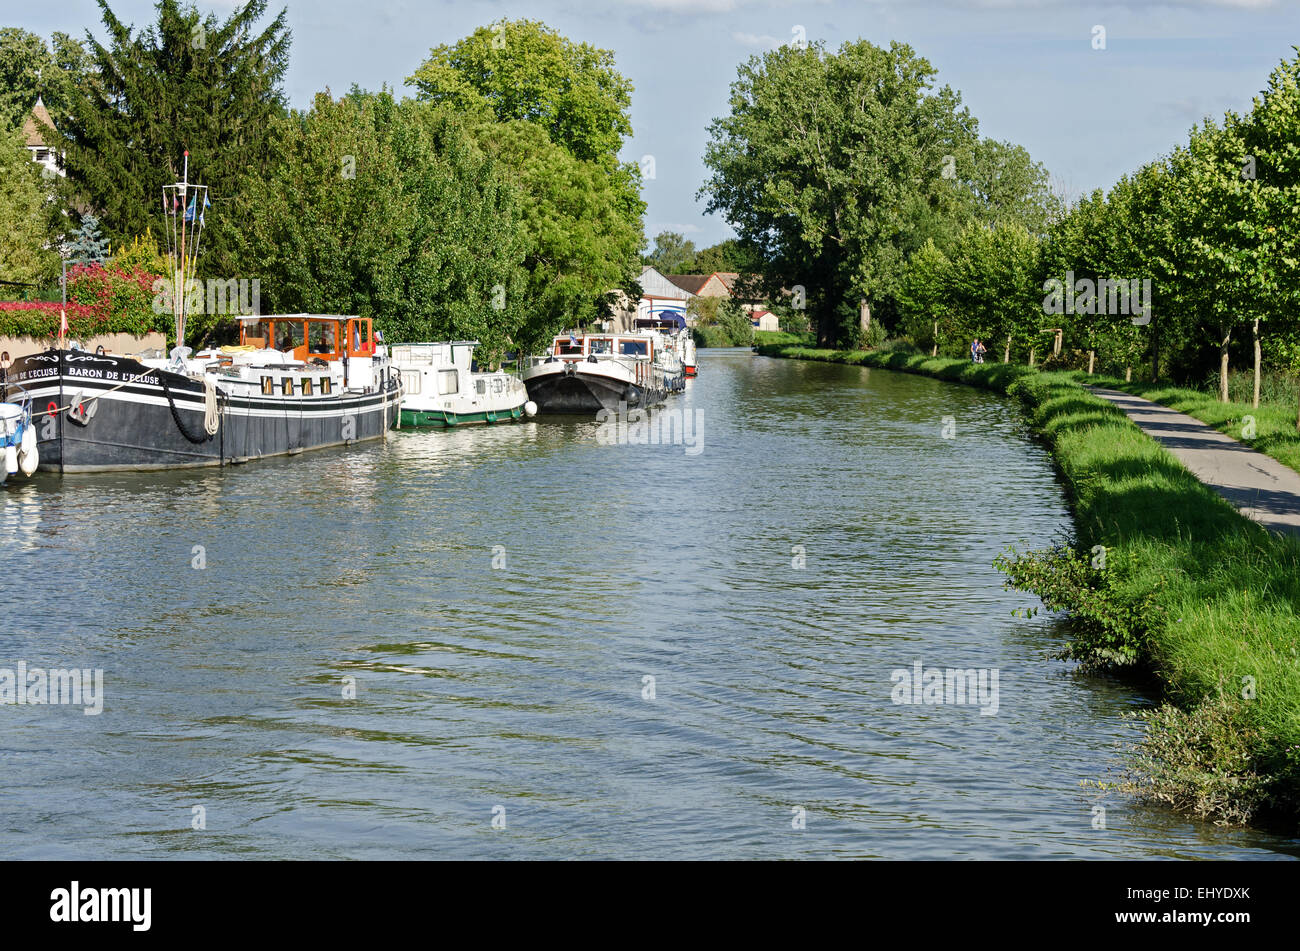 On the left, boats are tied up at the Fragnes marina; on the right, the old towpath has become the Voie Verte. Canal - Stock Image